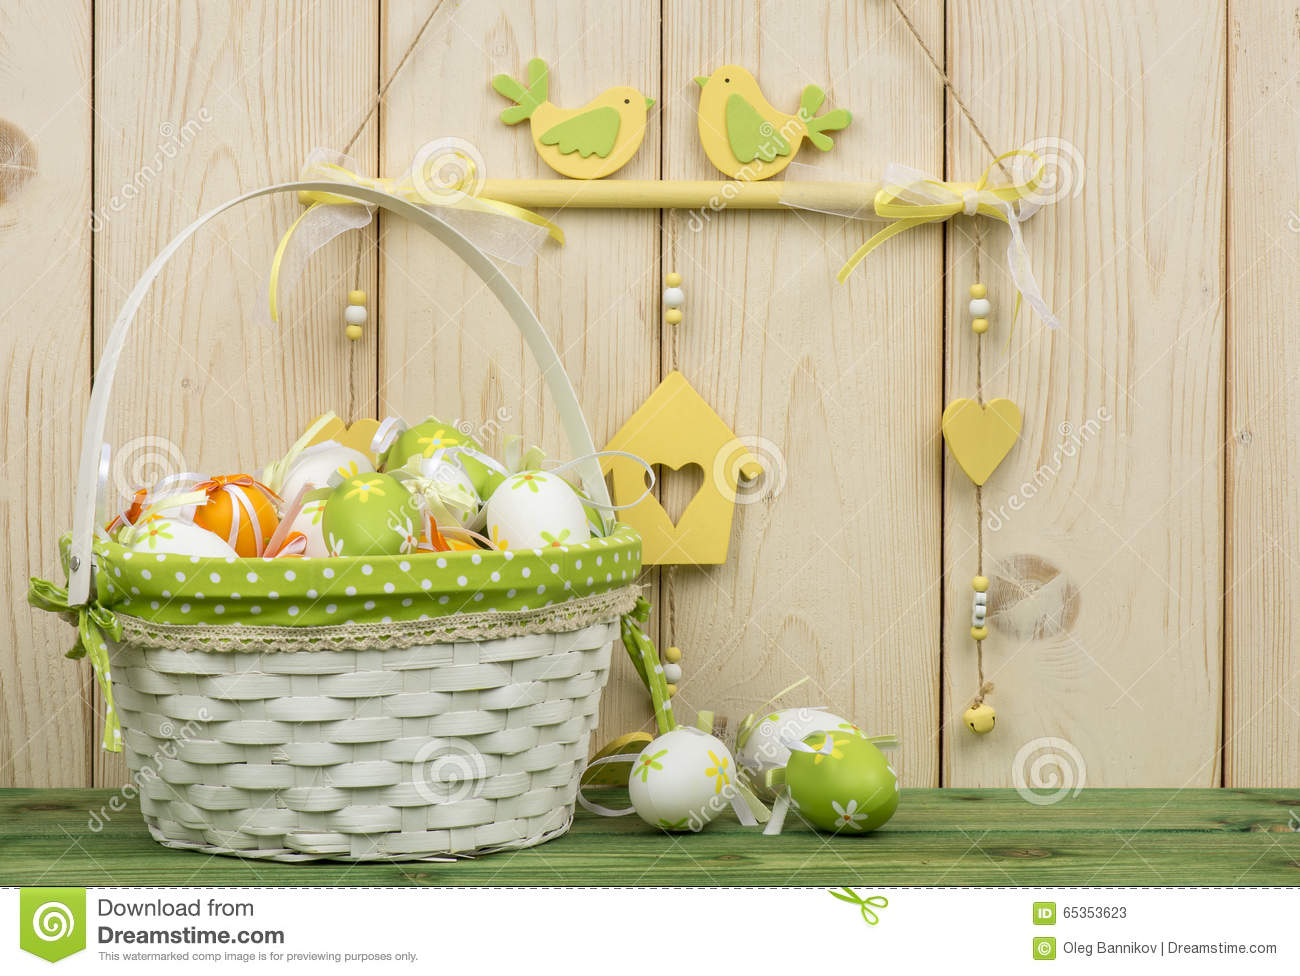 Easter Decorations Wooden Box Flowers Eggs Stock Photos, Images ...